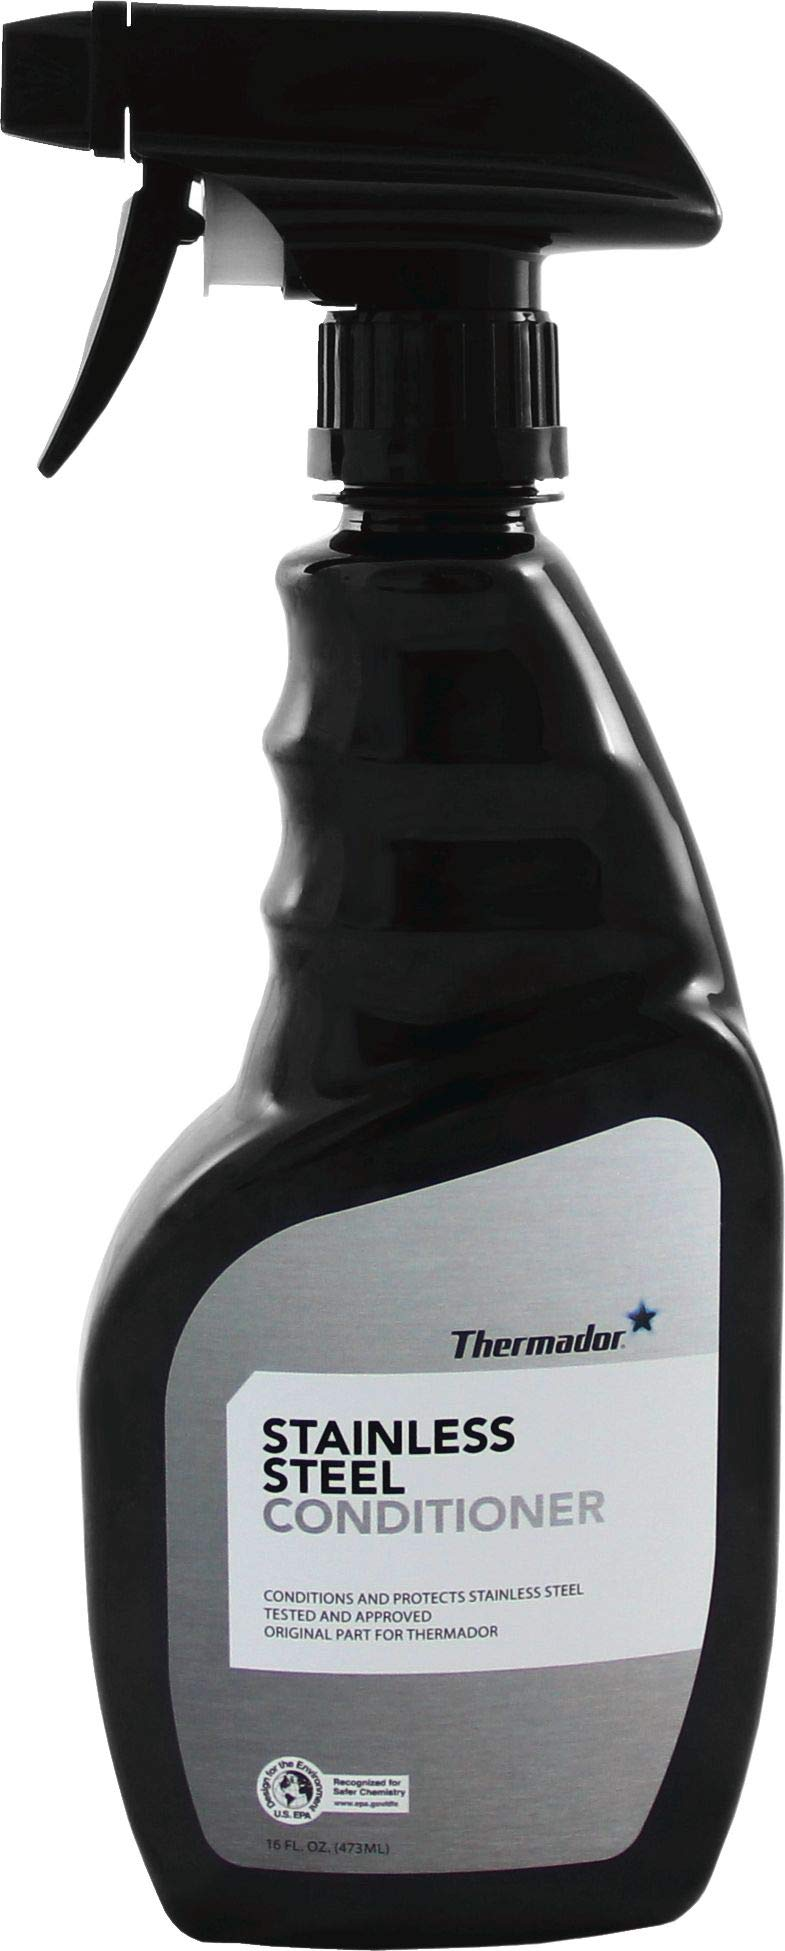 Thermador 00576697 Stainless Steel Conditioner Spray Bottle 2-Pack by Thermador